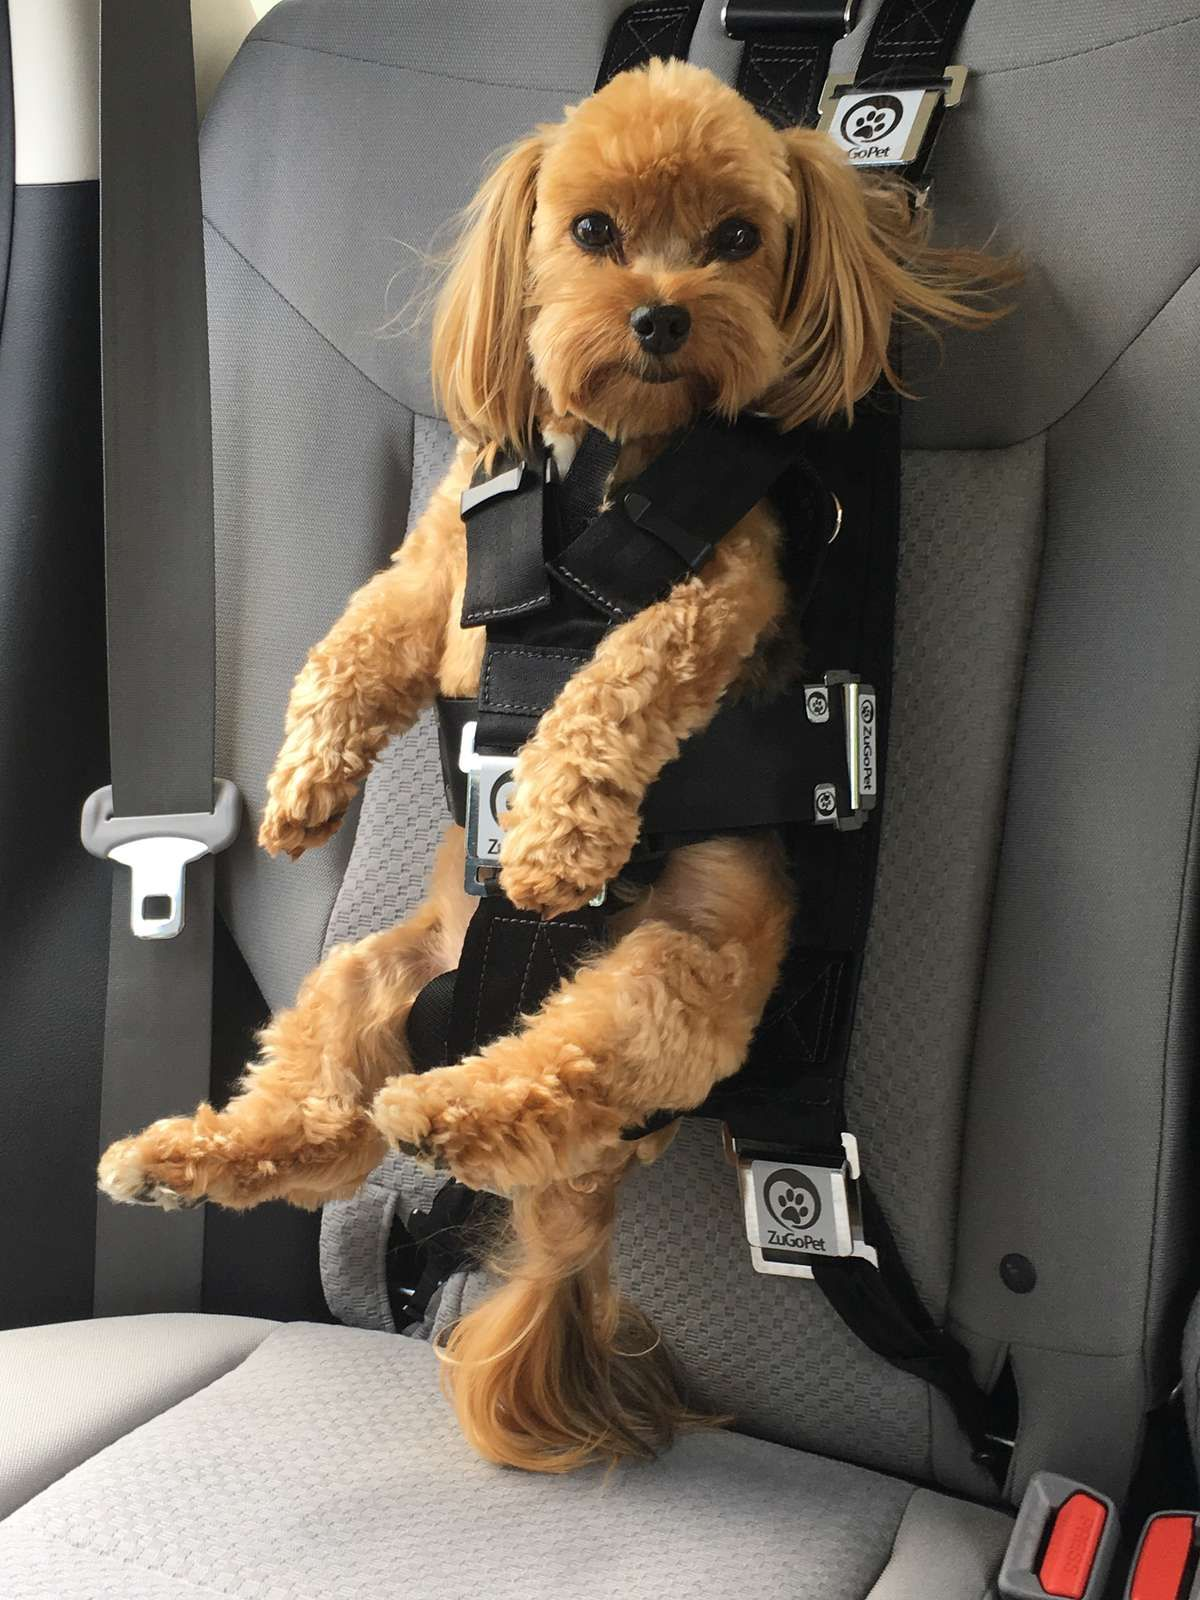 The Rocketeer Pack Is A Patented Pet Safety Car Seat Designed To Protect Your Dog In Case Of An Accident Multifunctional Works As